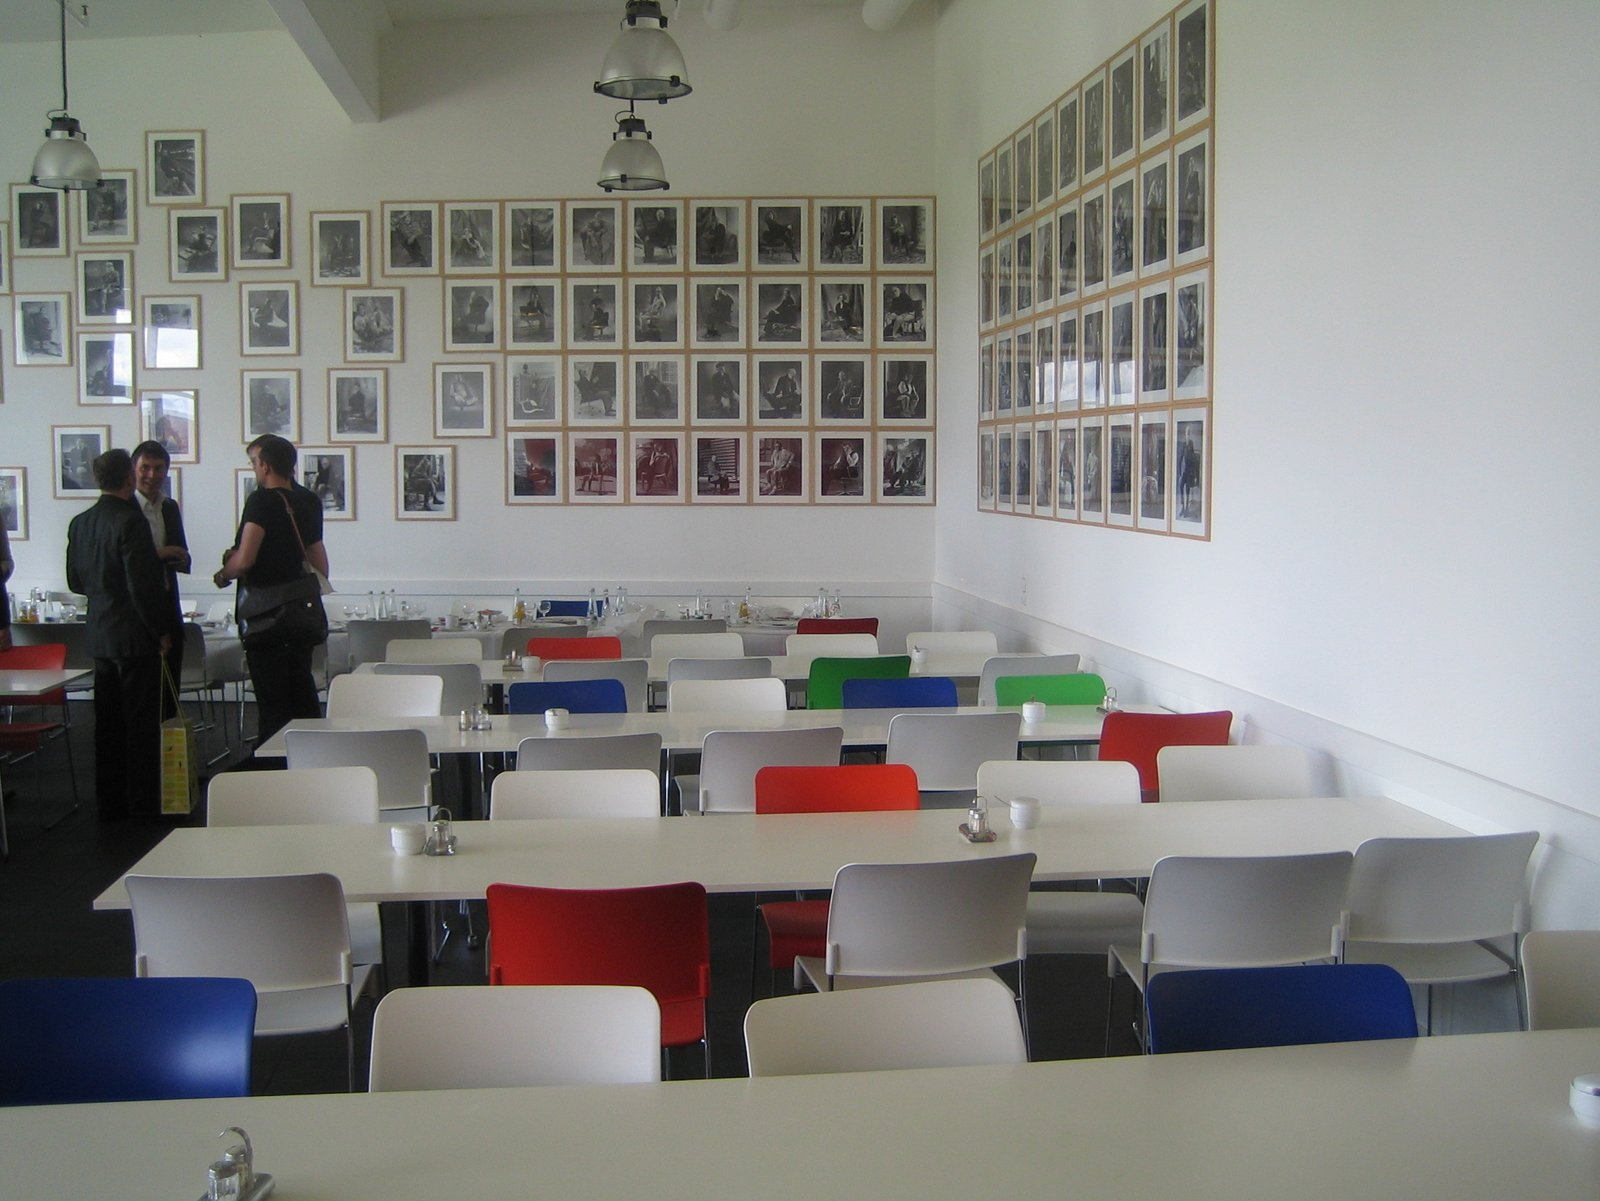 Lunch was very tasty at the cafeteria. I loved the mismatched chairs and wall of photos of celebs (like Miles Davis, Spike Lee and Ben Kingsley) in Vitra chairs.  Touring the Vitra Campus  by Aaron Britt